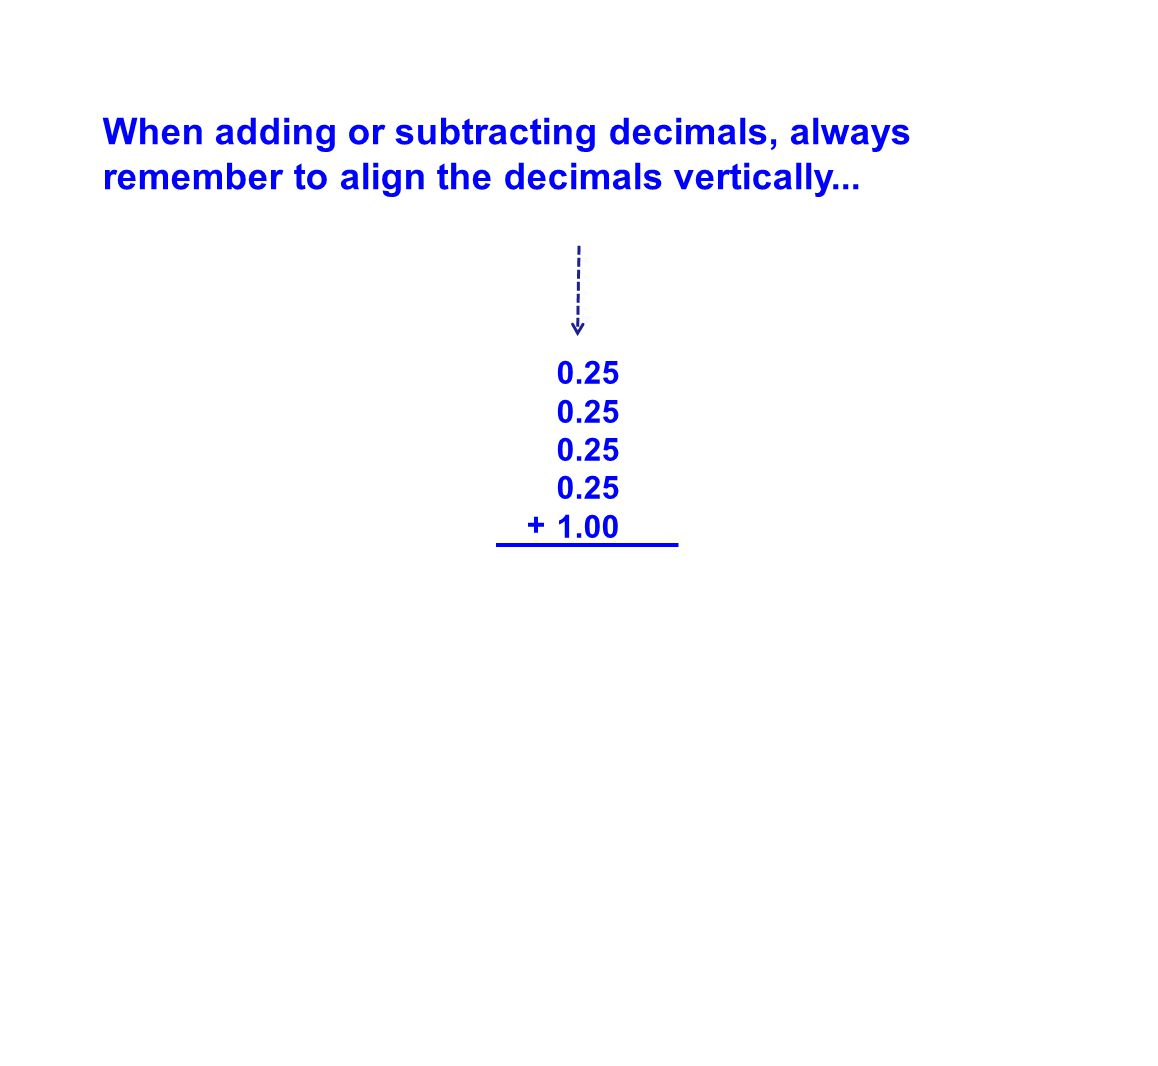 When adding or subtracting decimals, always remember to align the decimals vertically...